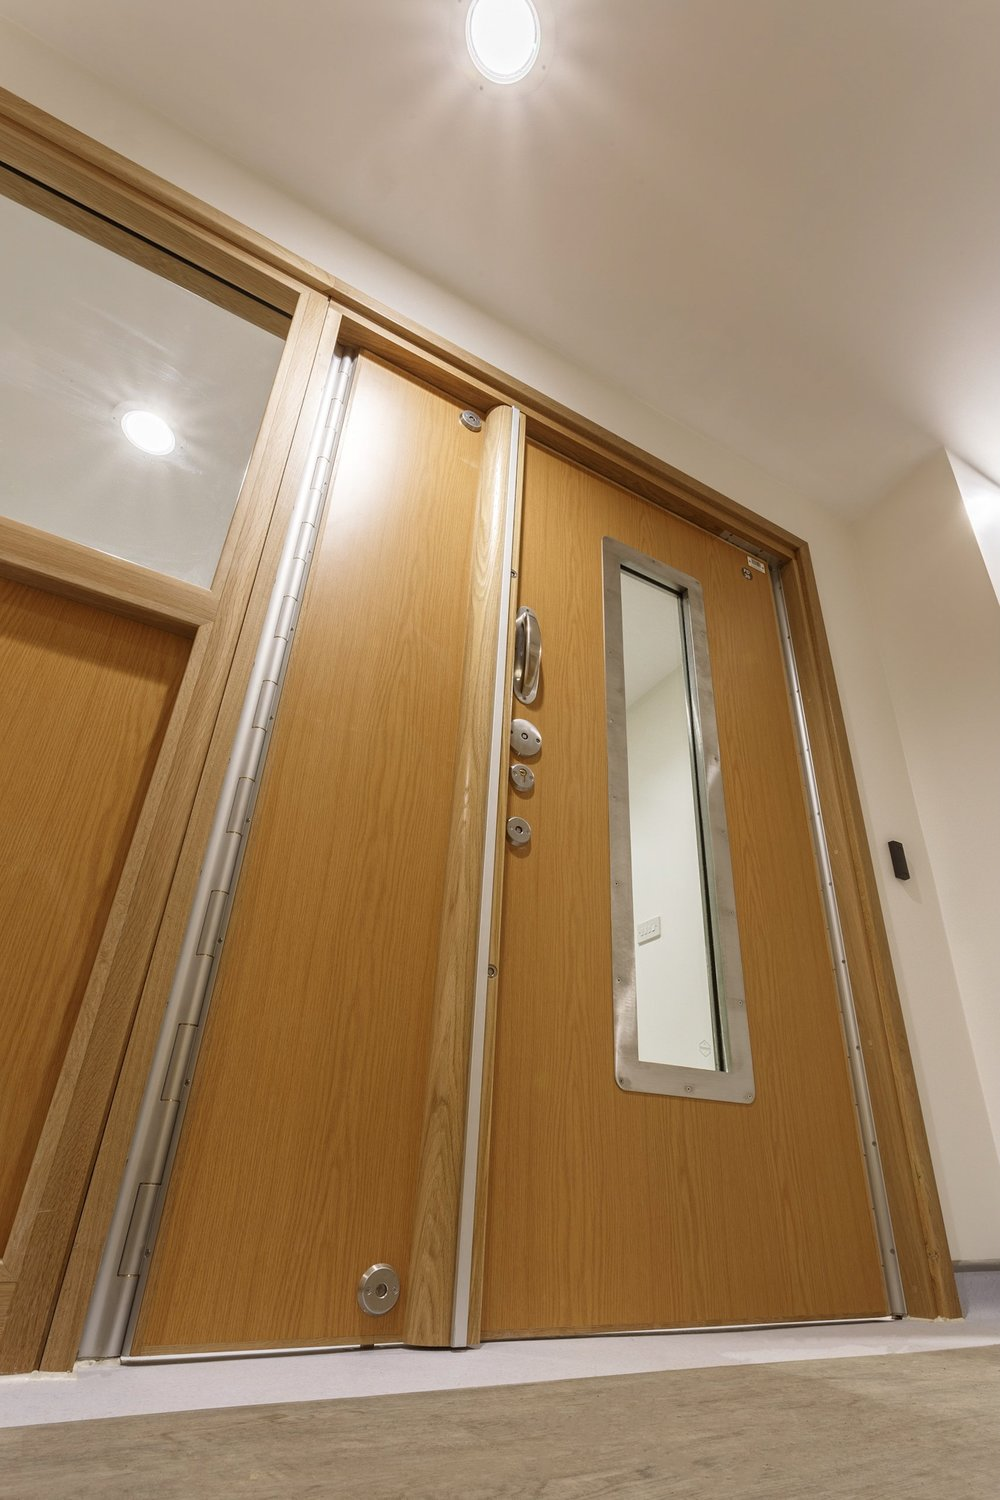 Client issue picture of the door taken on the Platypo Pro